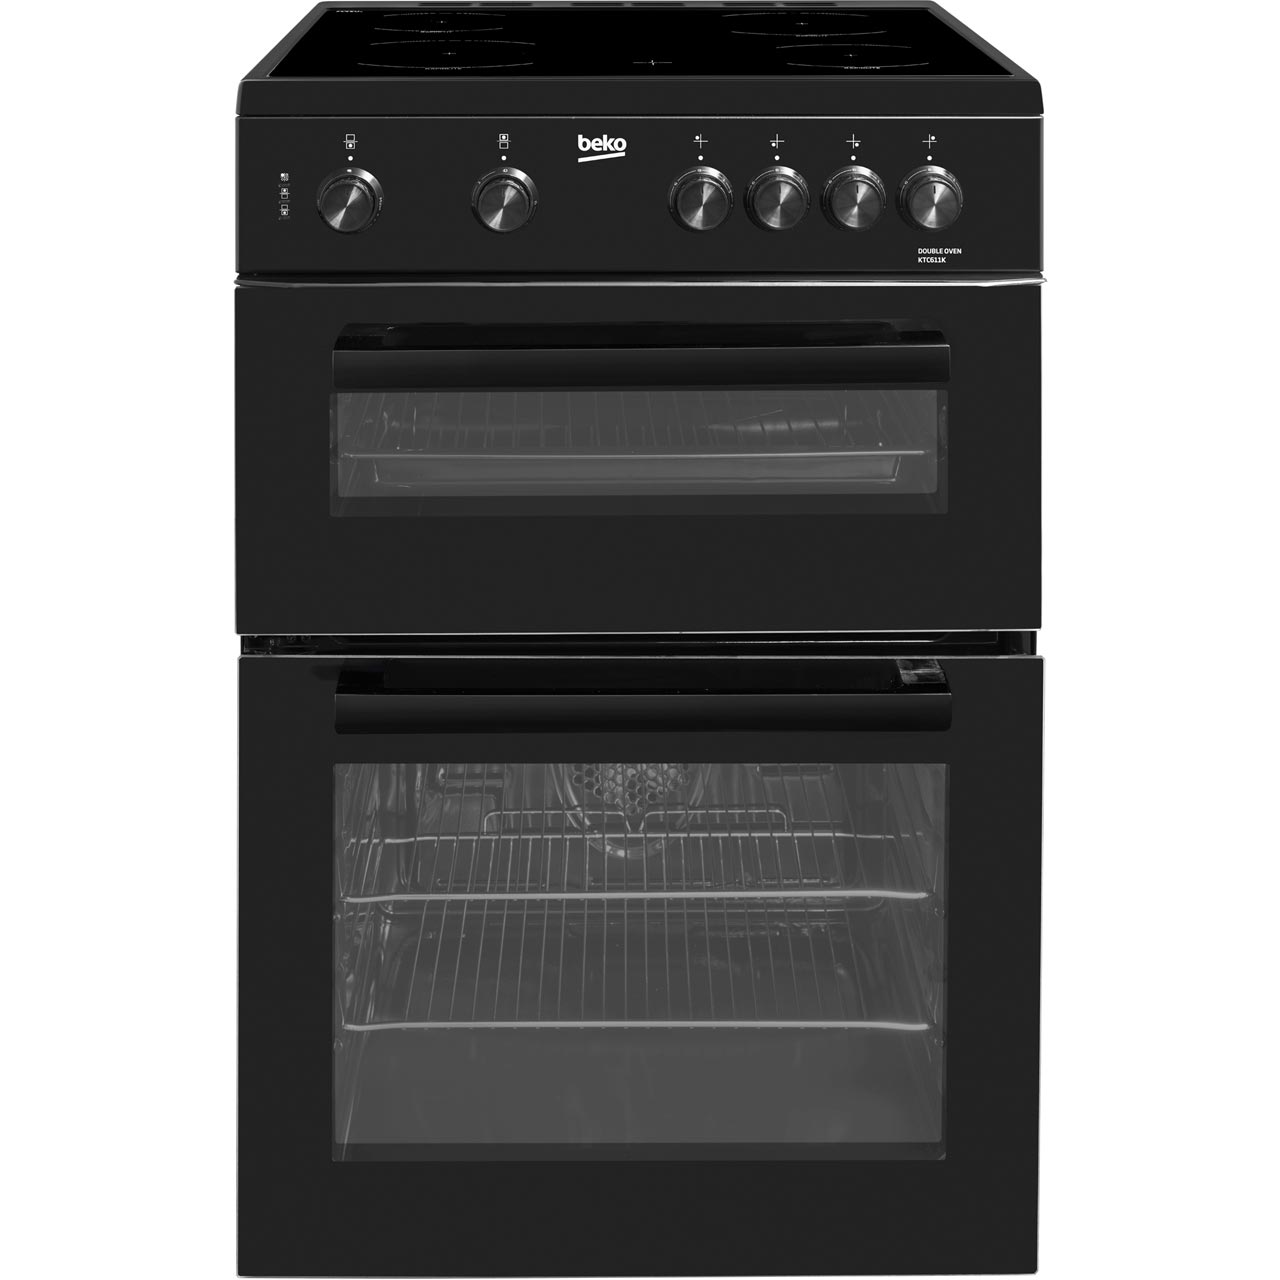 beko electric cooker wiring diagram land cruiser 100 electrical best prices in cookers and ovens online